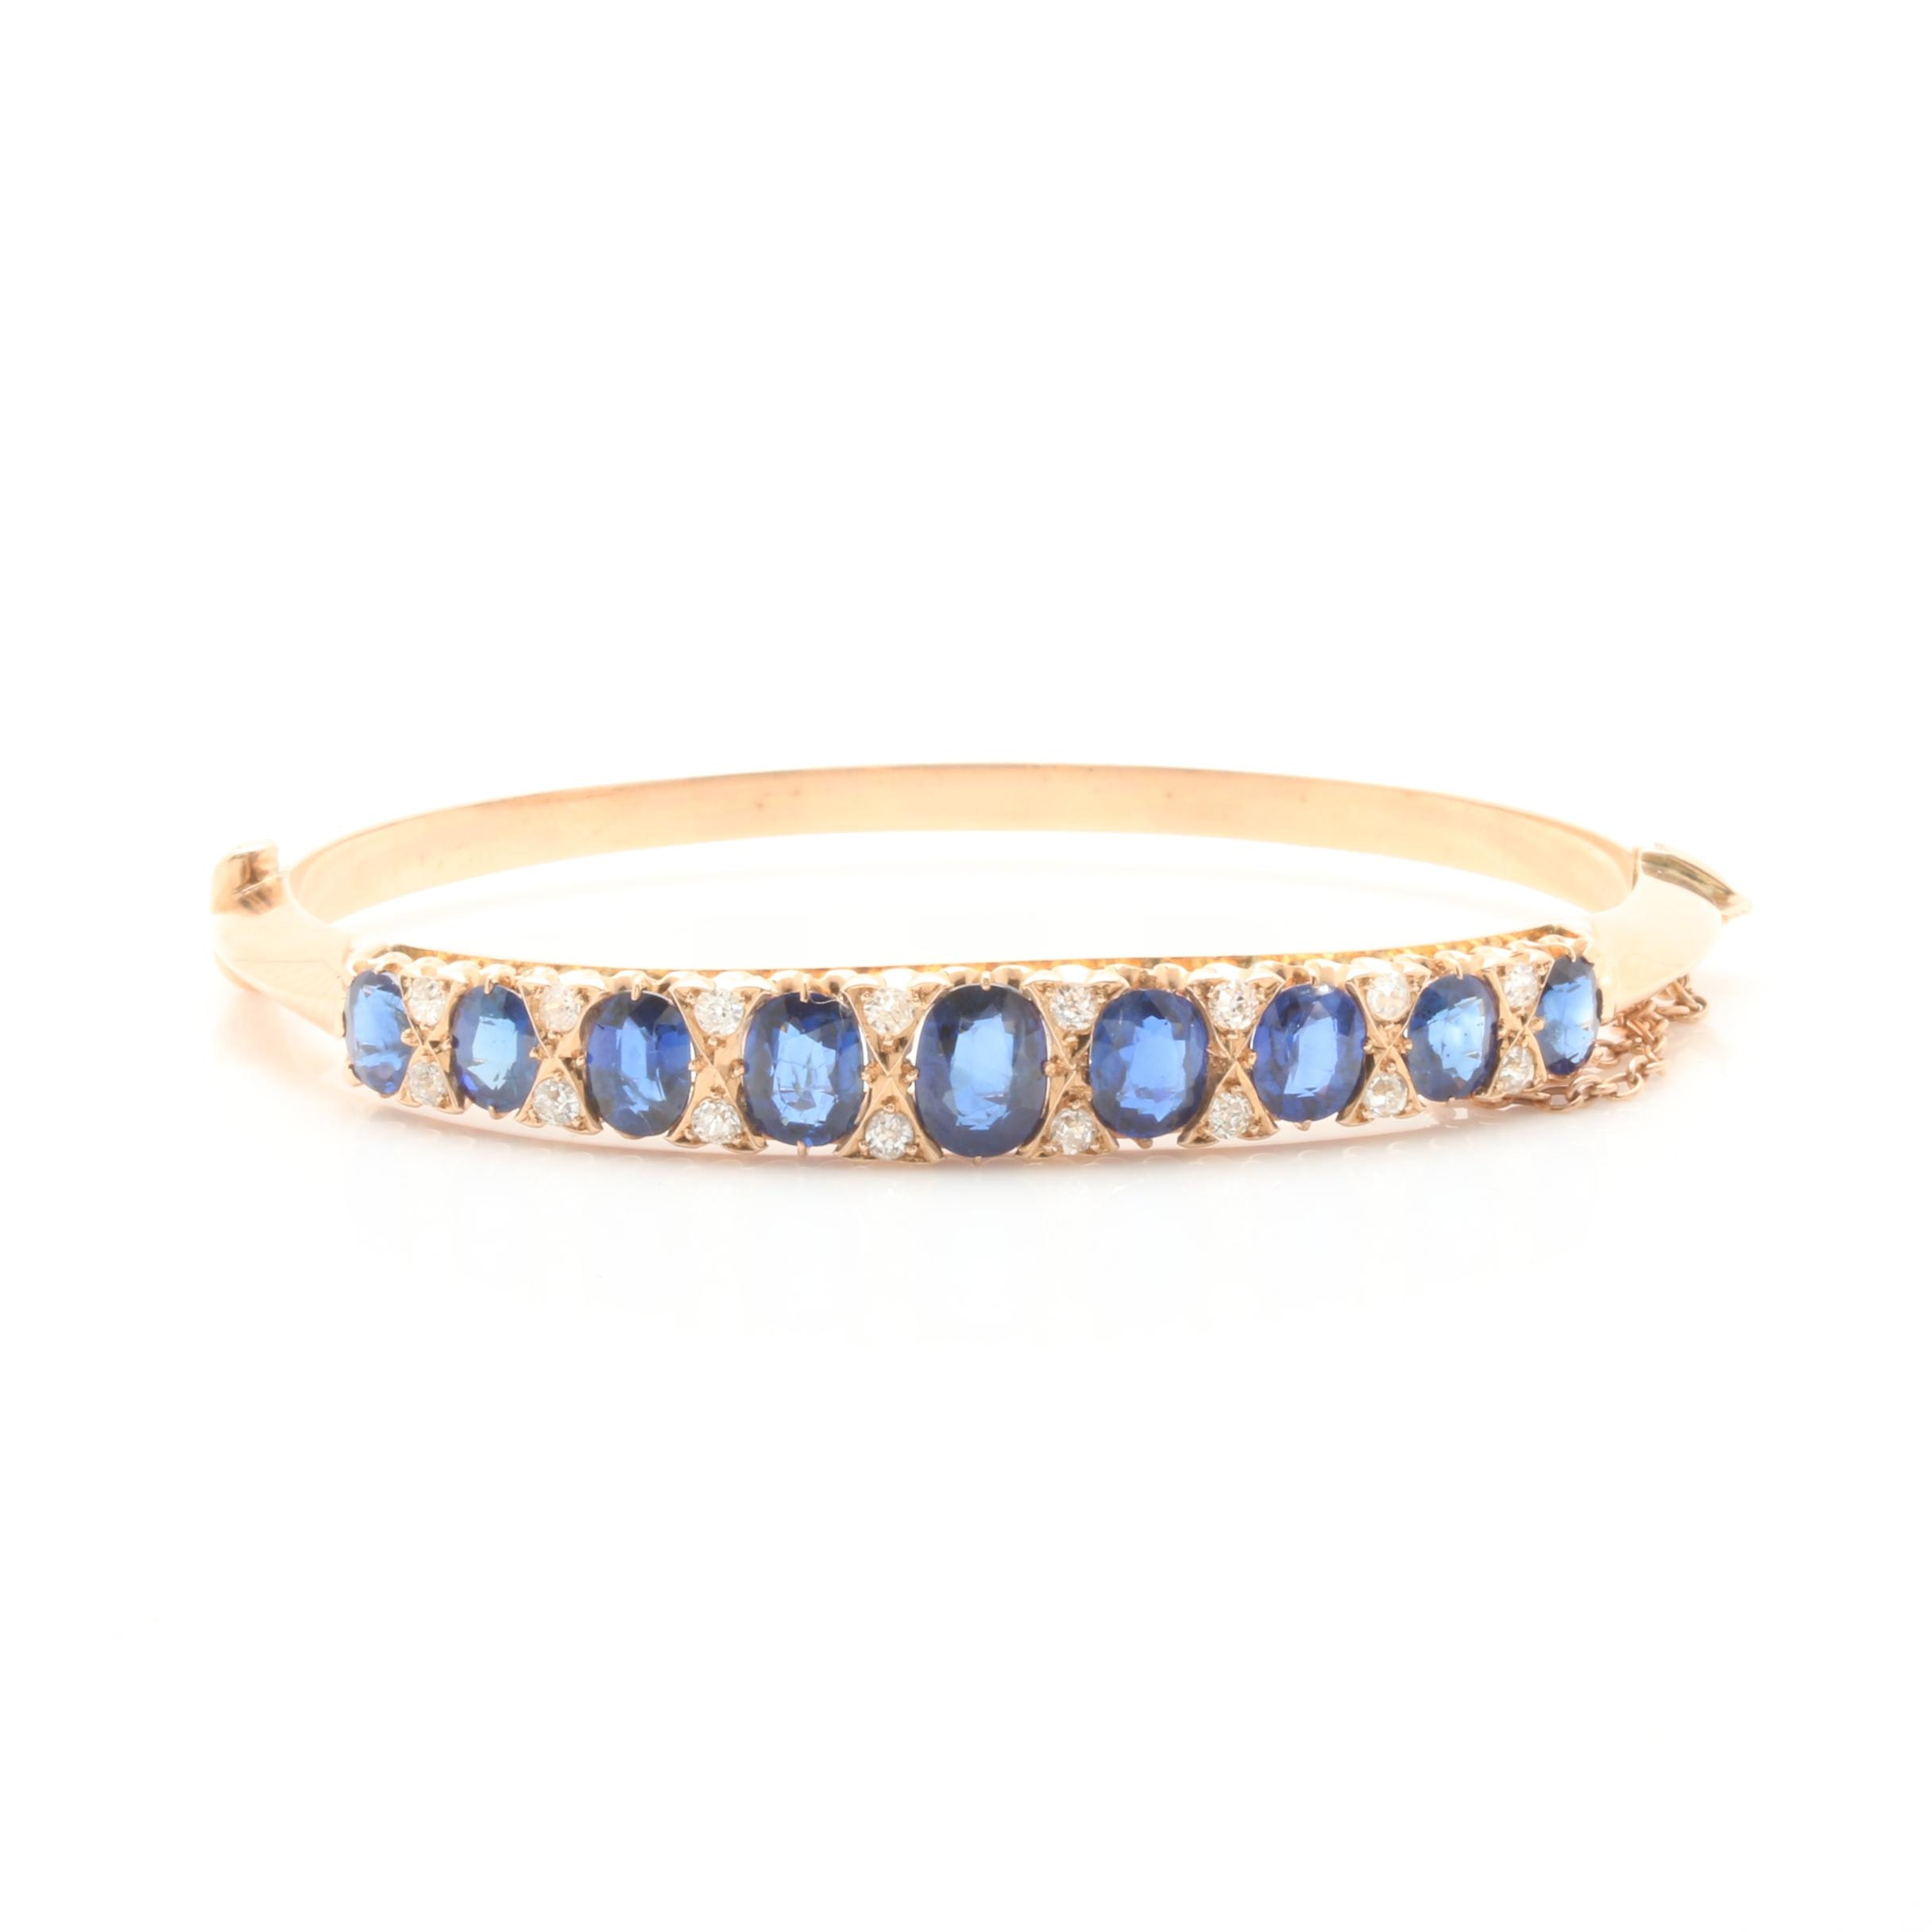 Vintage 14K Yellow Gold Untreated Blue Sapphire and Diamond Hinged Bangle